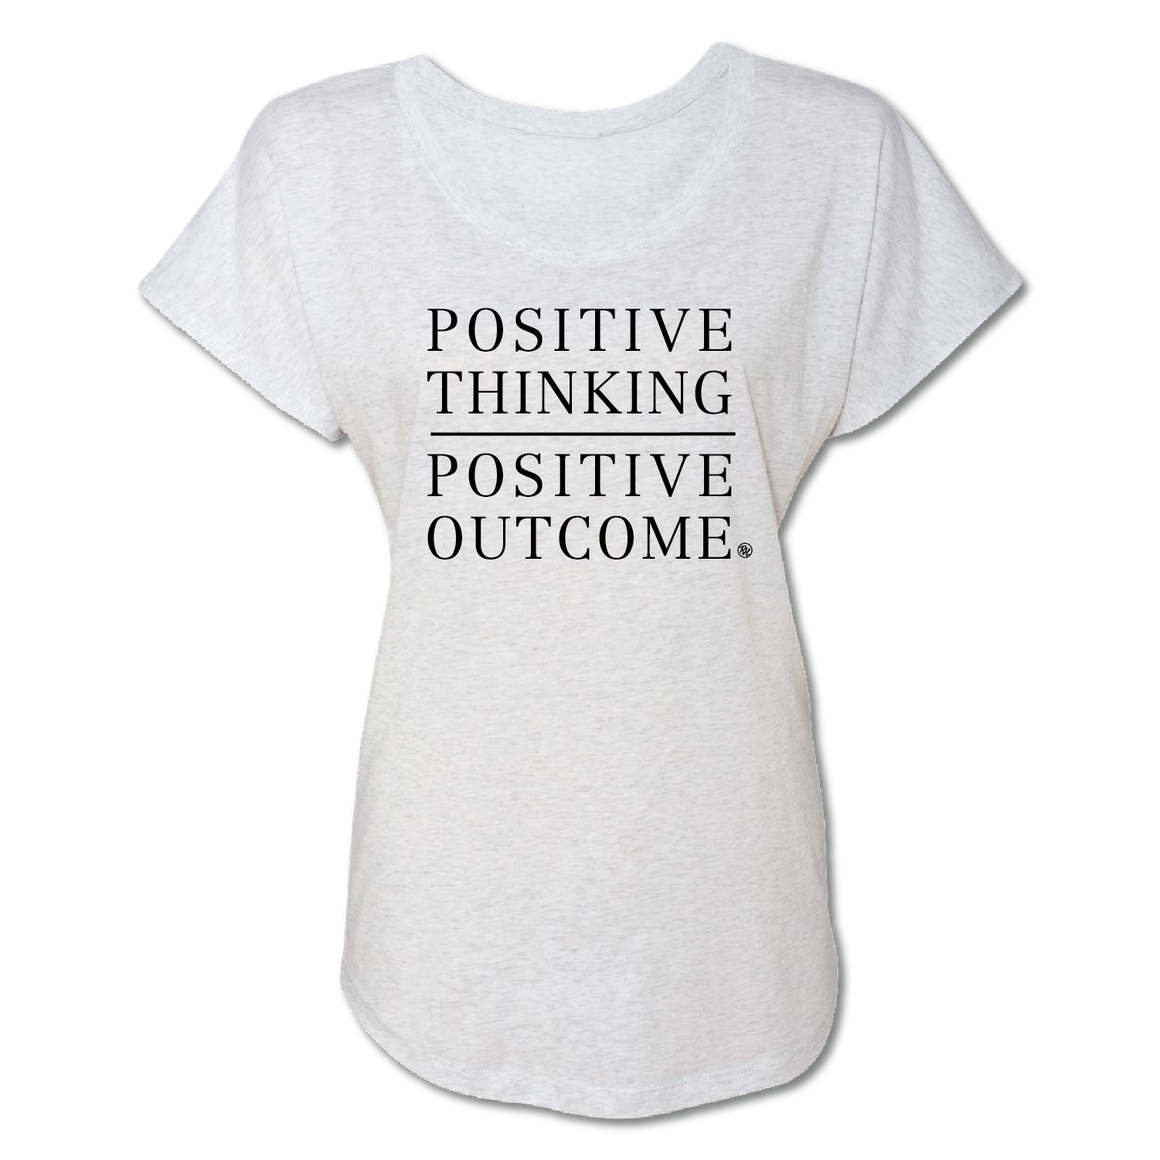 Positive Thinking - Heather White - Women's Tee